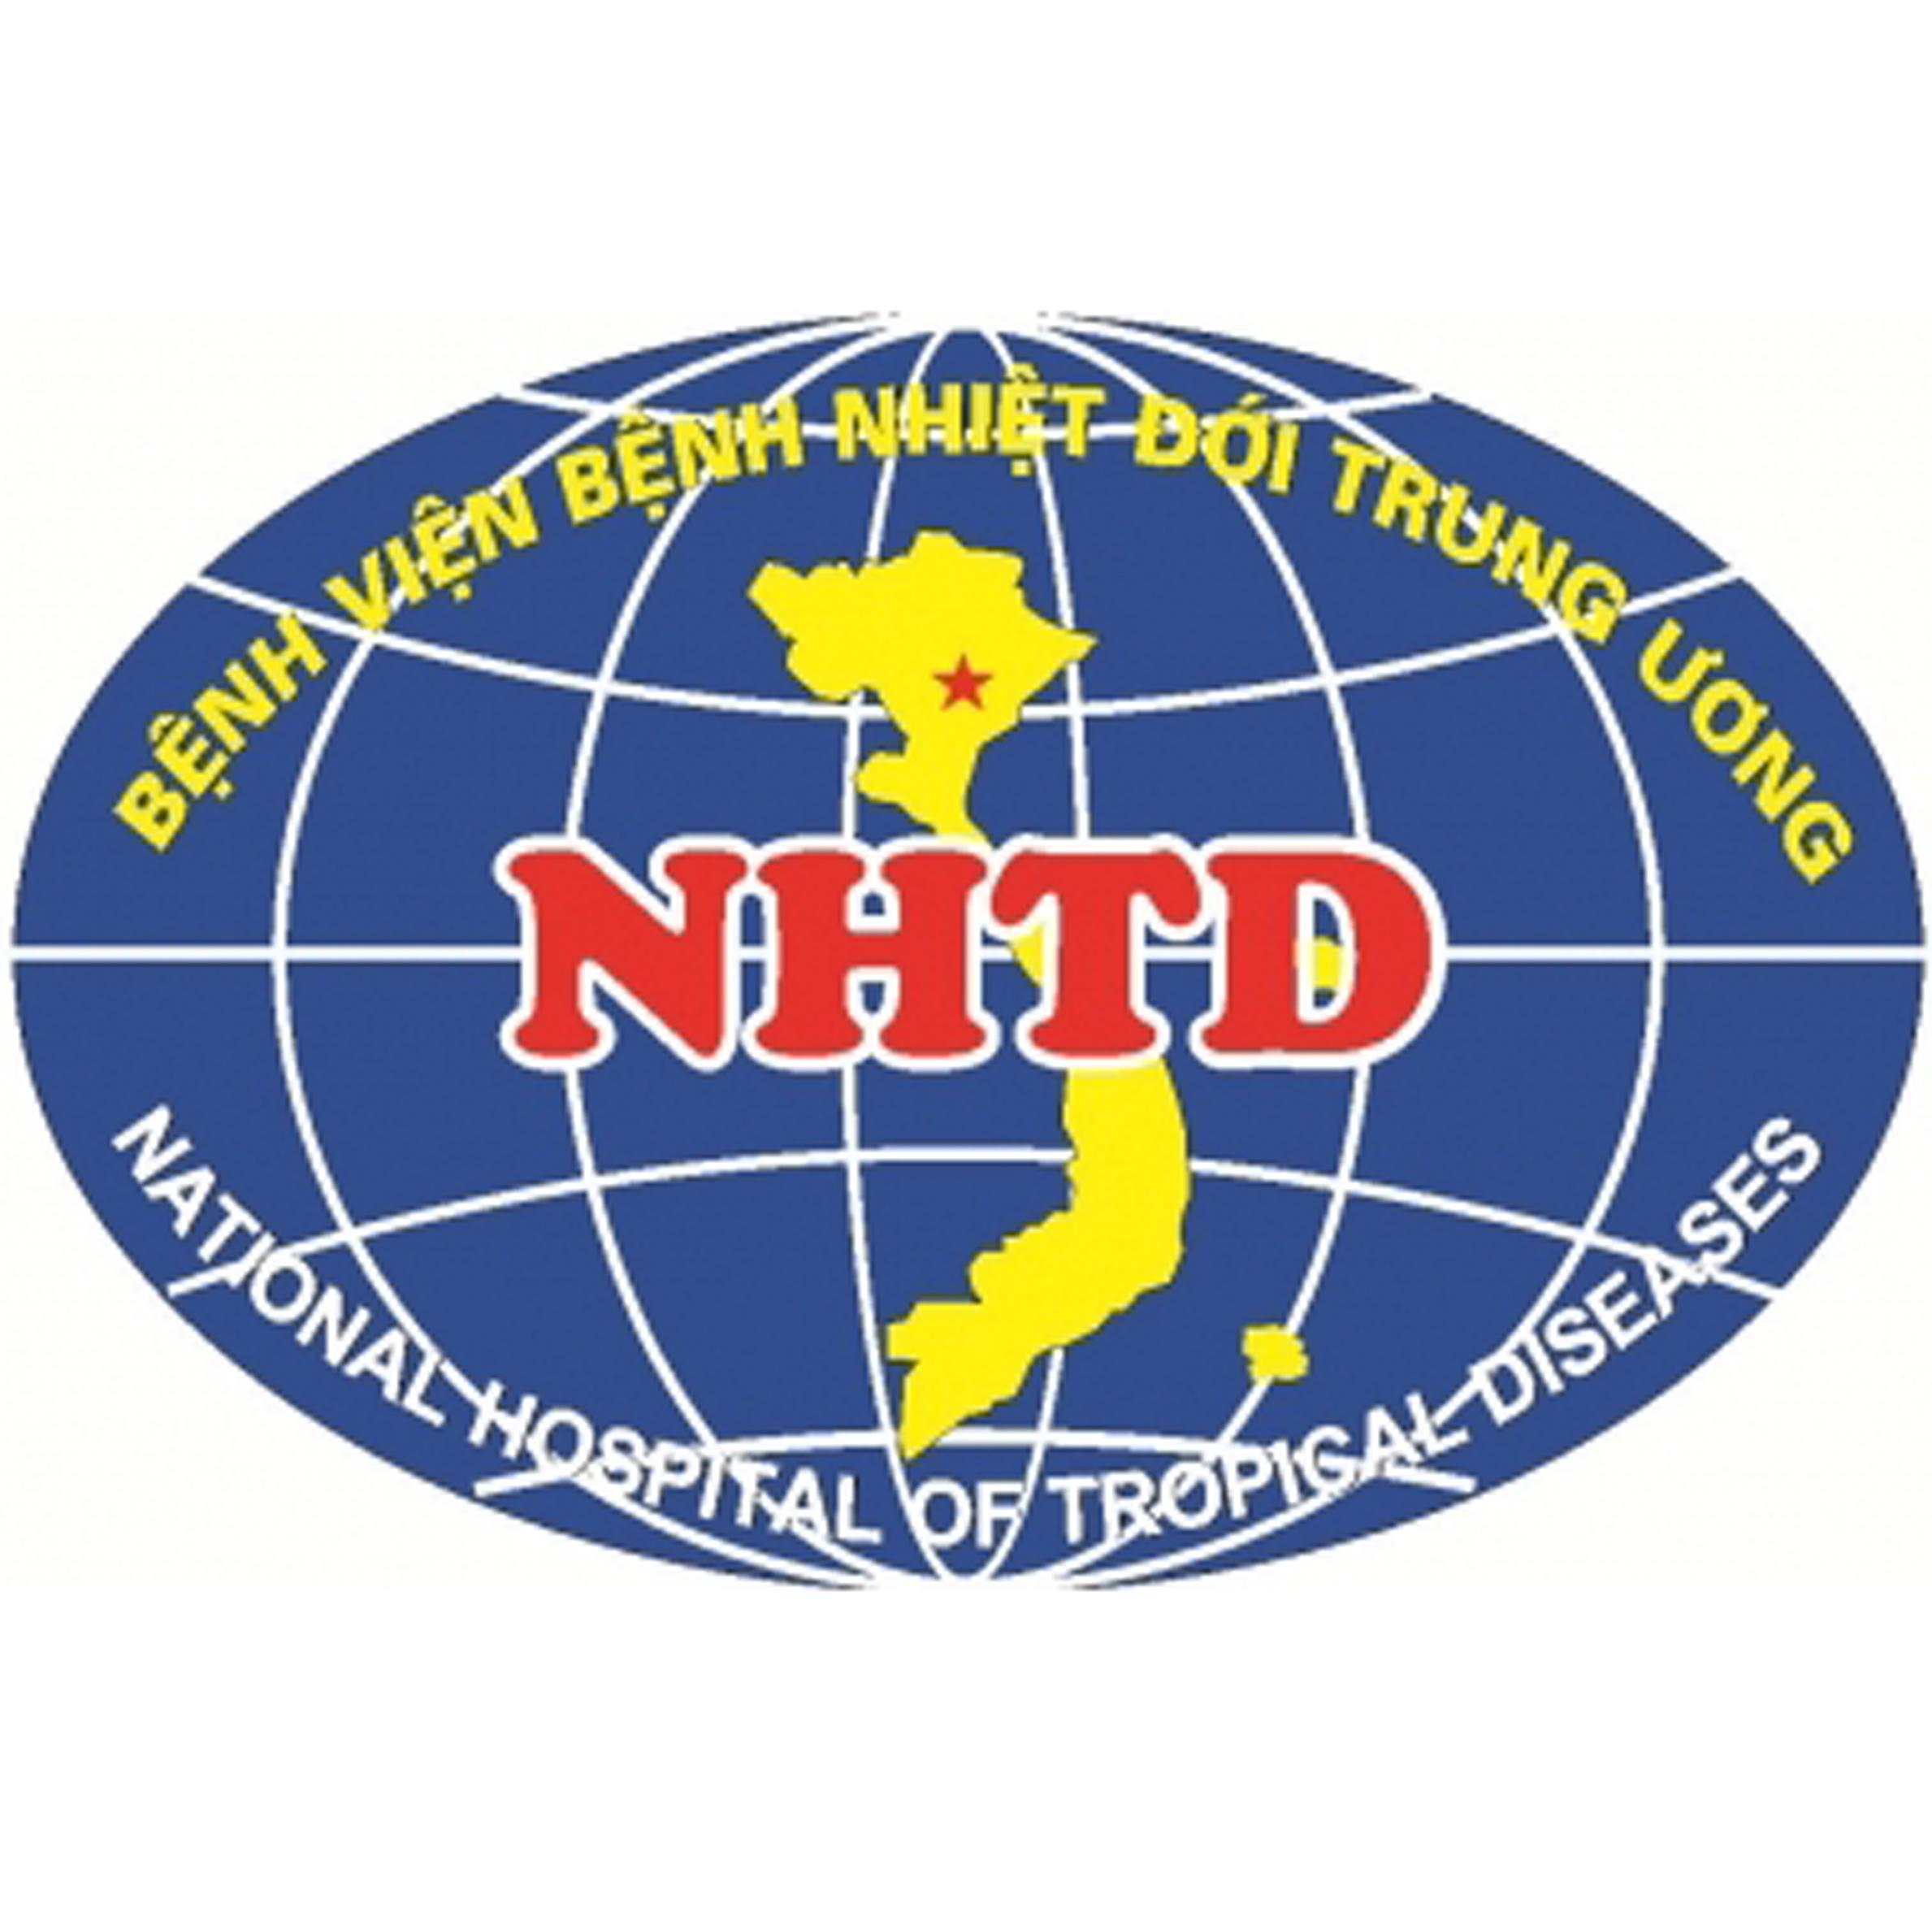 NATIONAL HOSPITAL FOR TROPICAL DISEASES